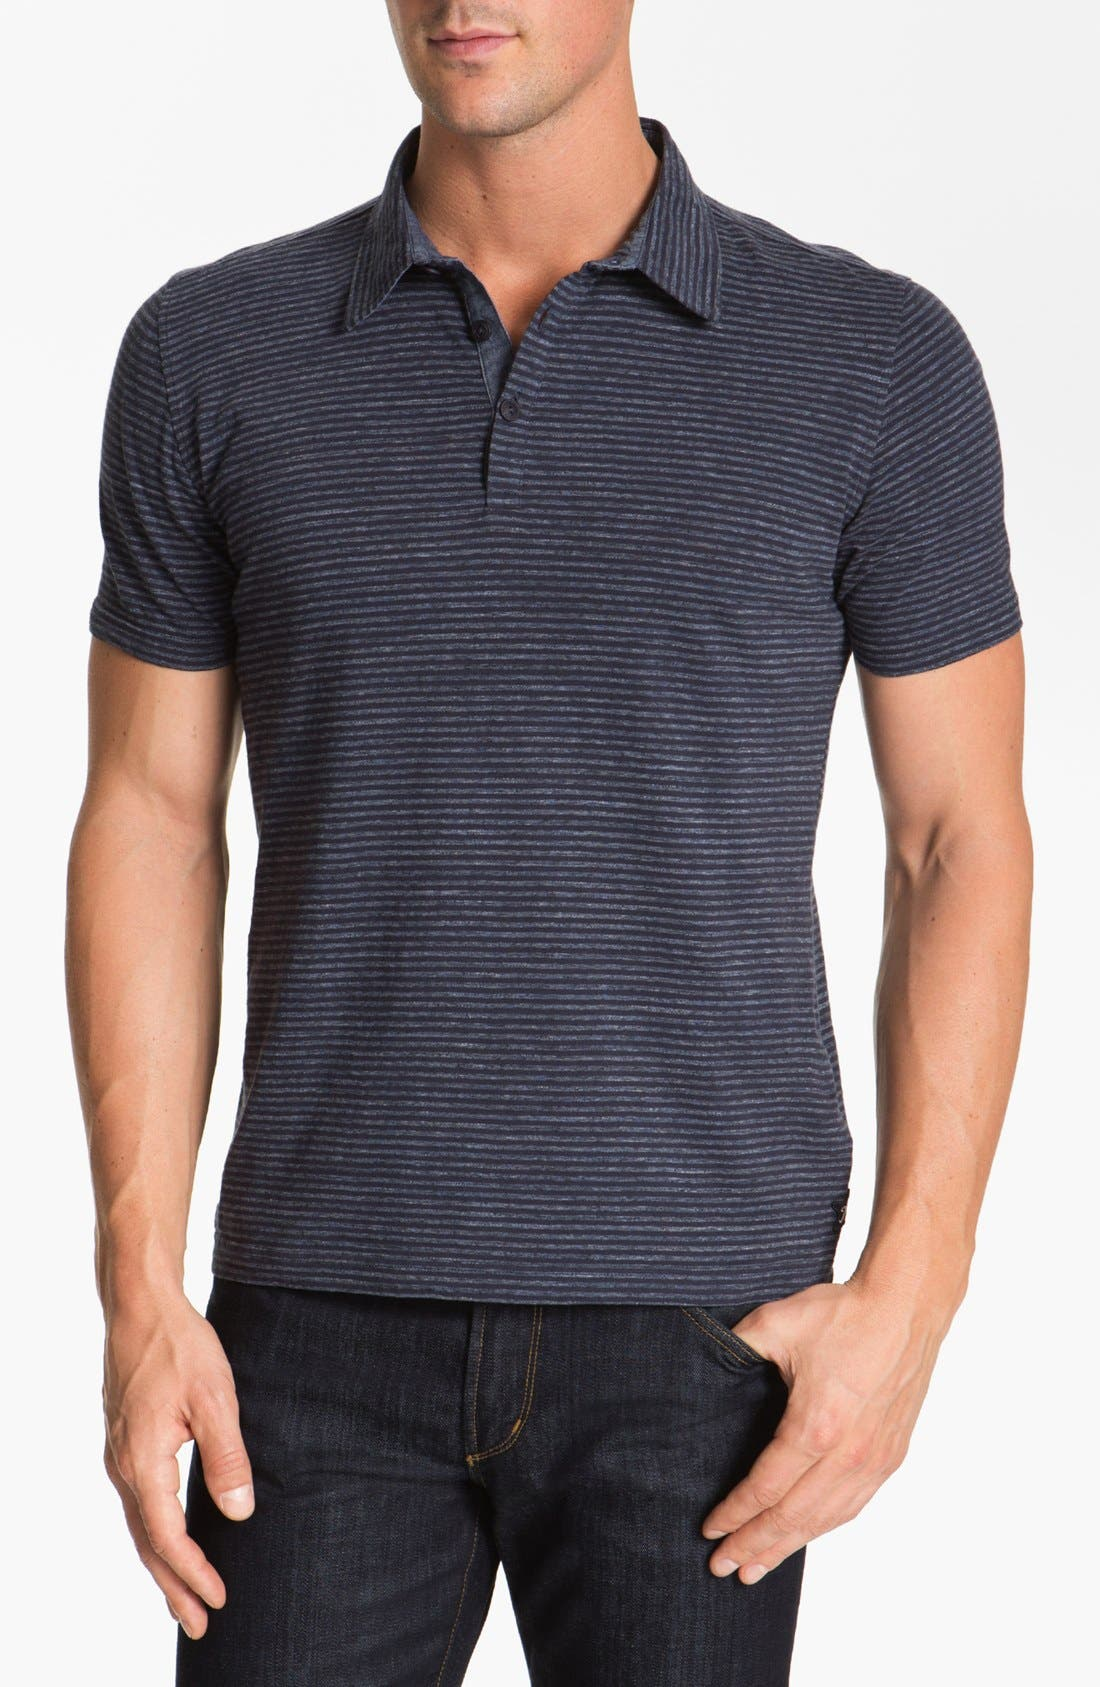 Alternate Image 1 Selected - Façonnable Tailored Denim Knit Polo